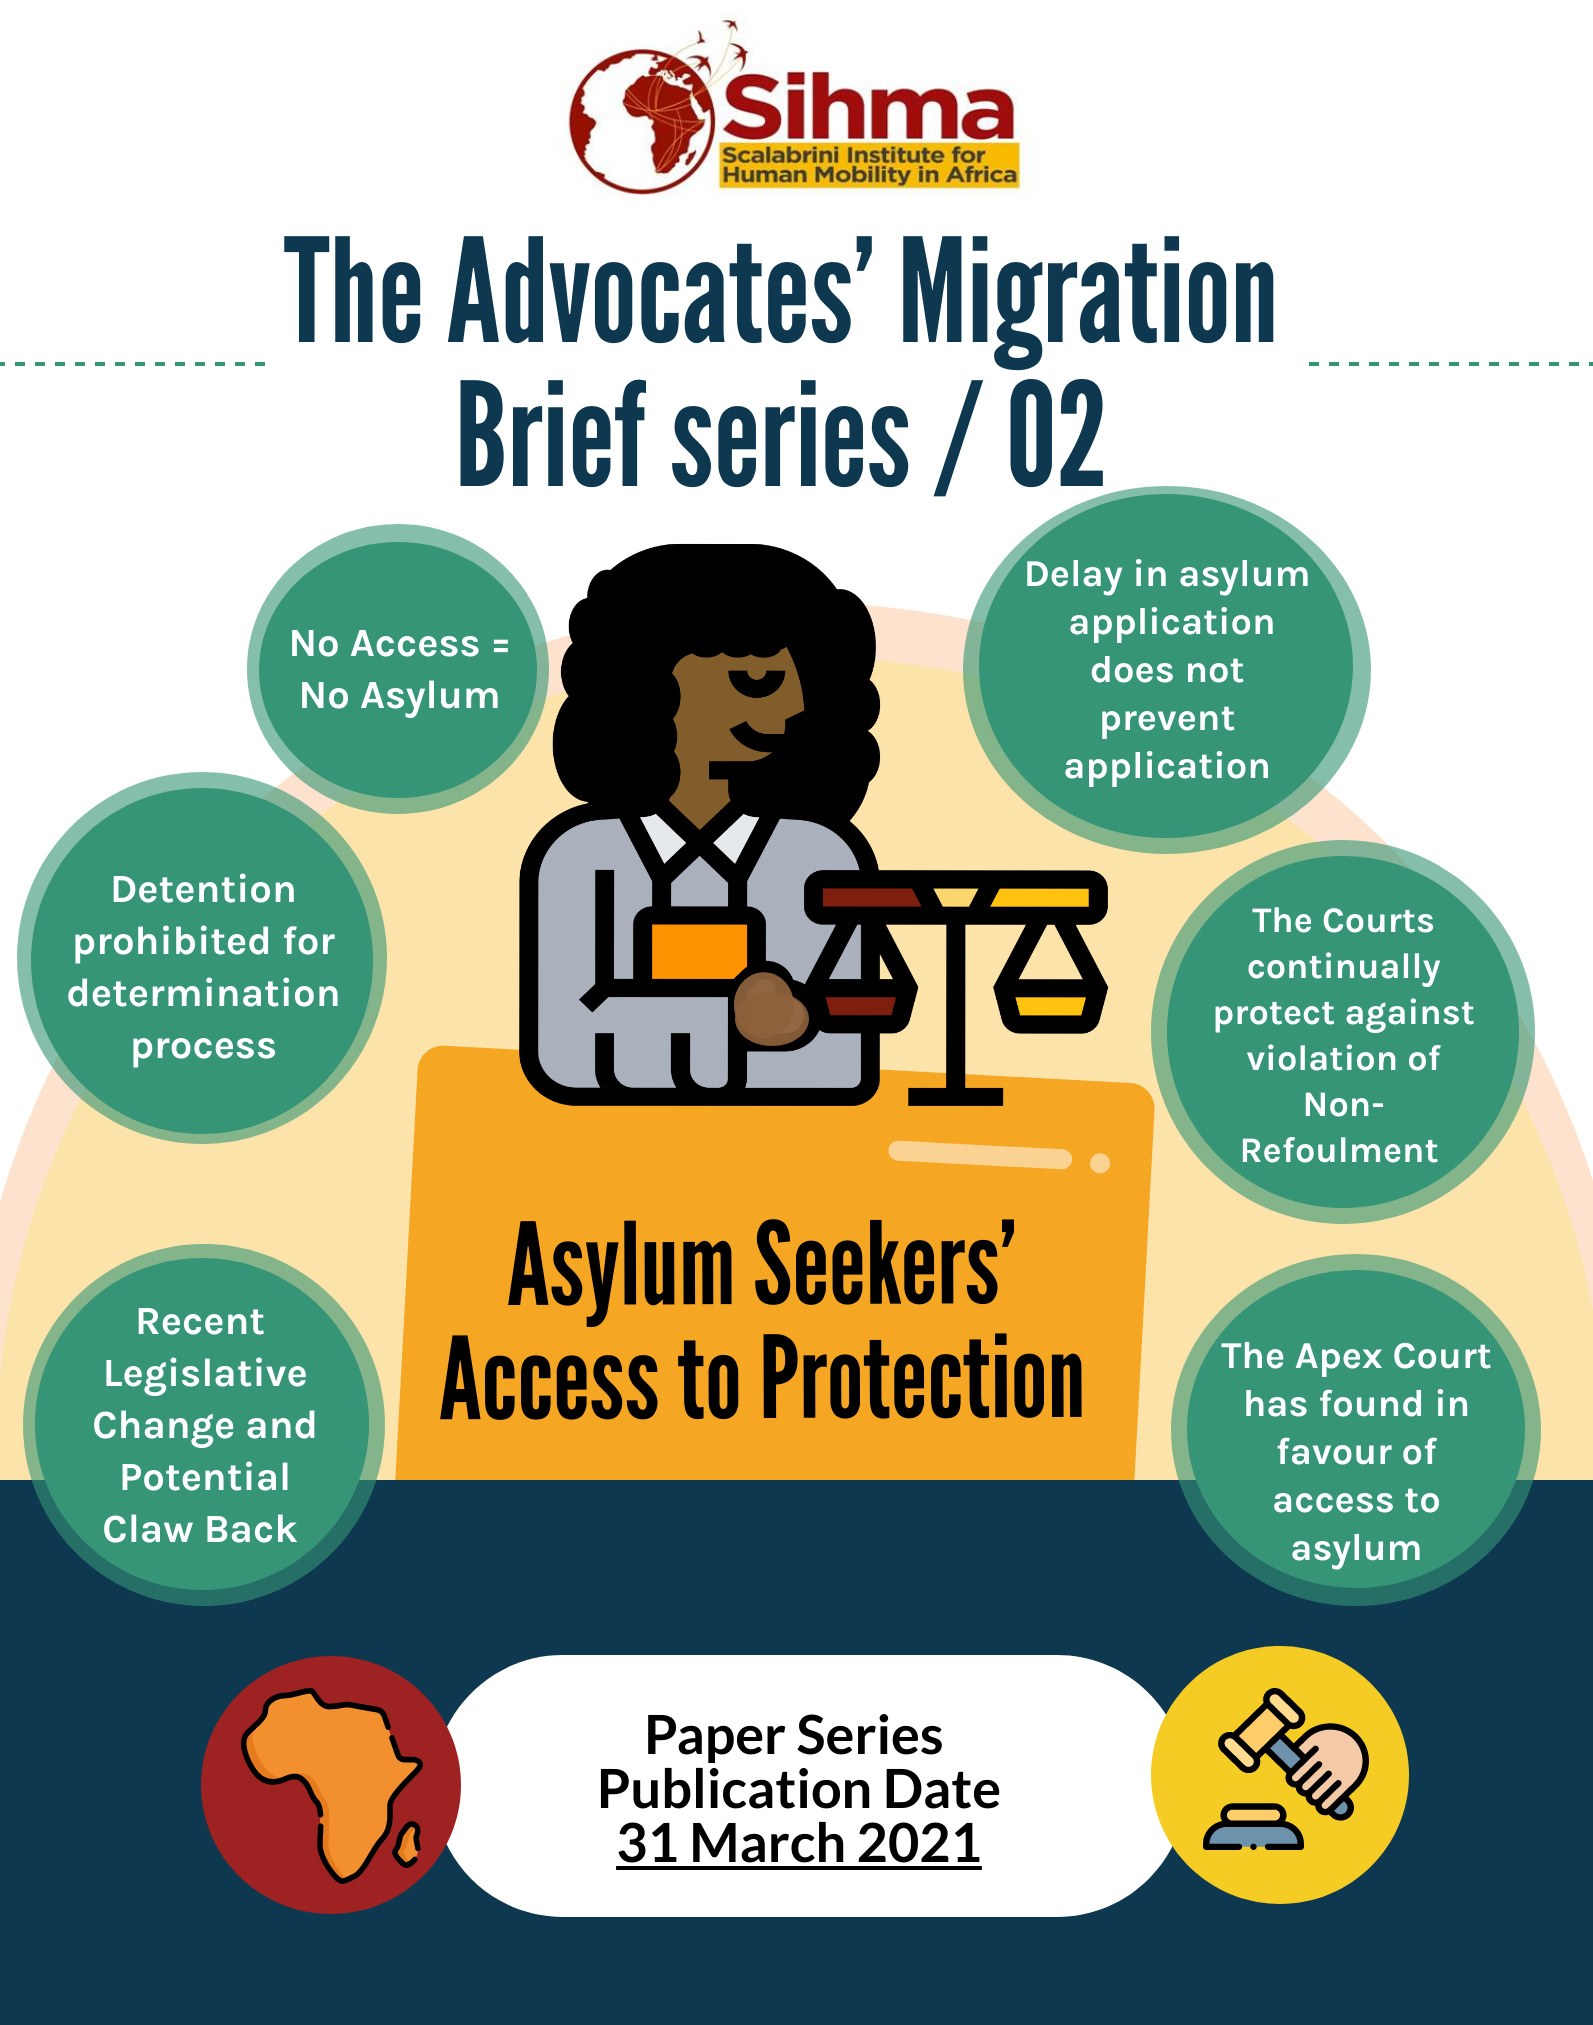 https://sihma.org.za/photos/shares/advocates-migration_02.png